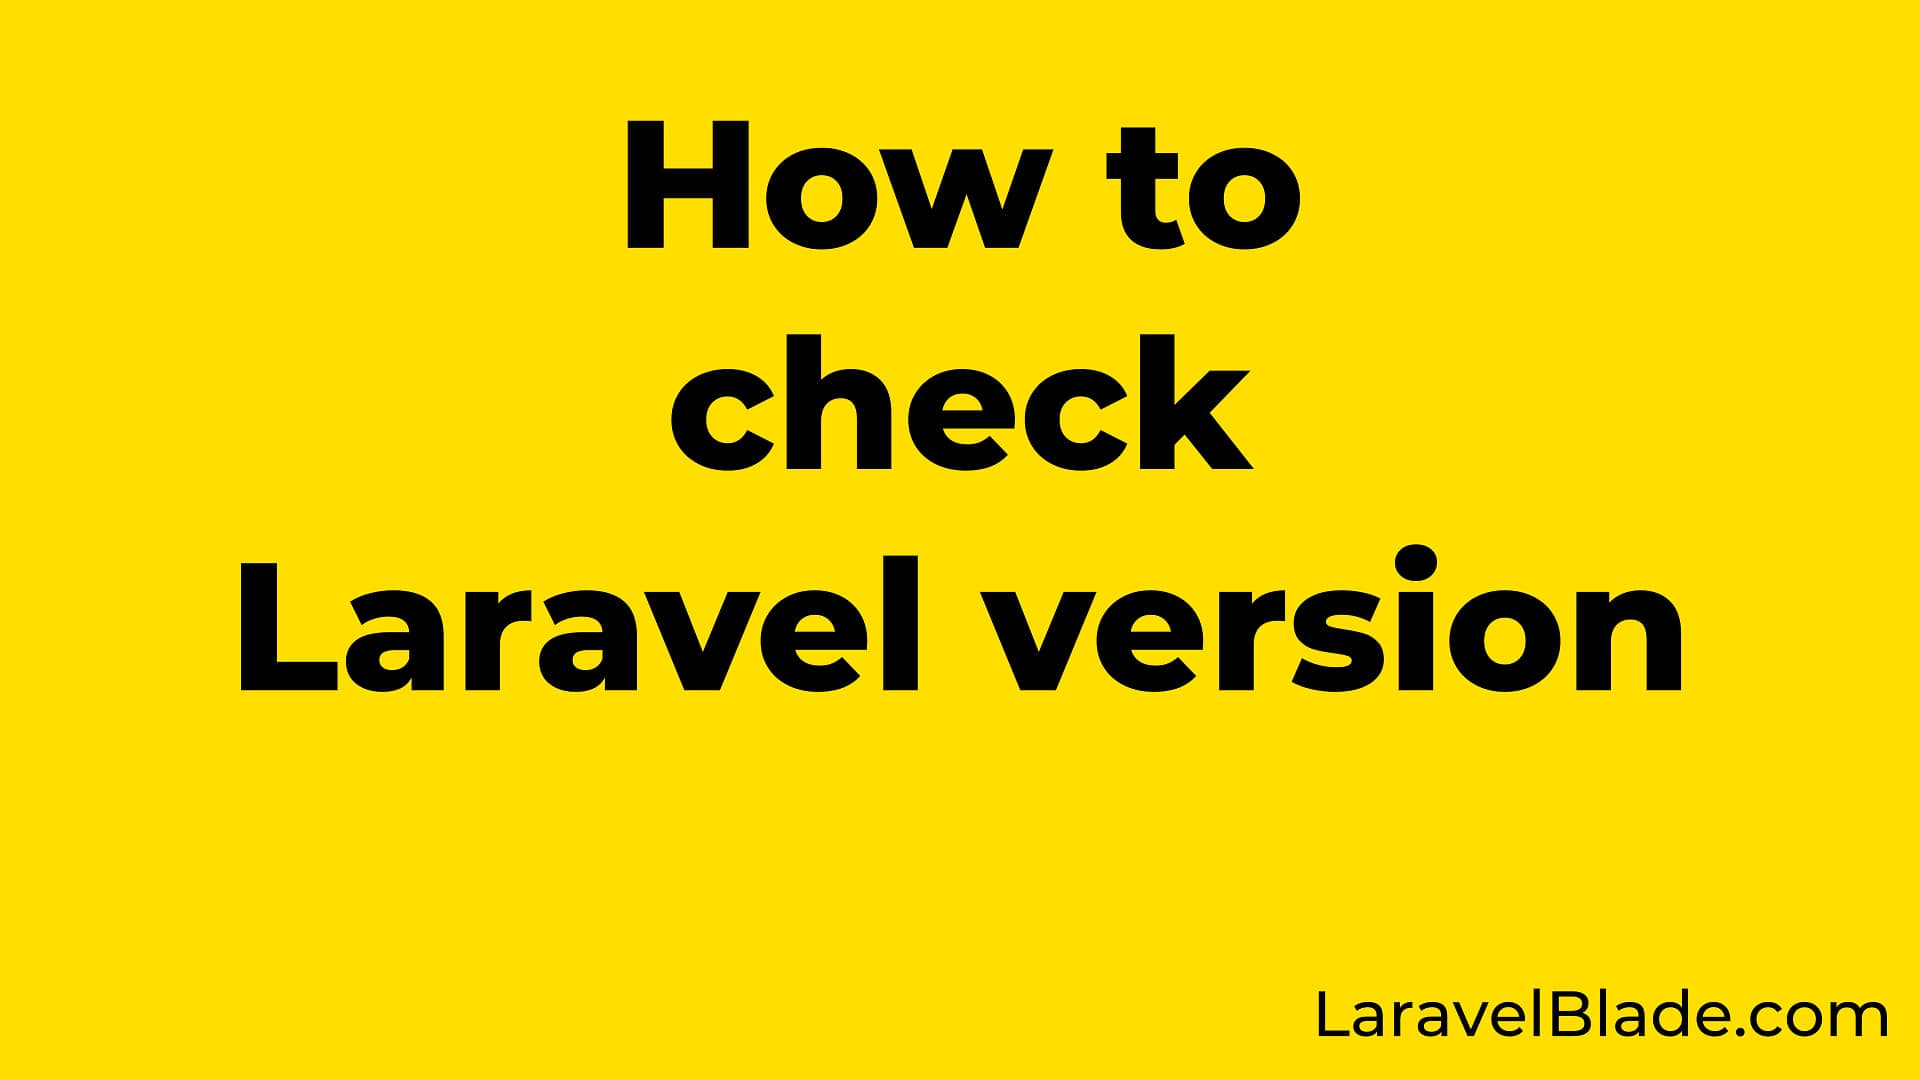 How to check Laravel Version